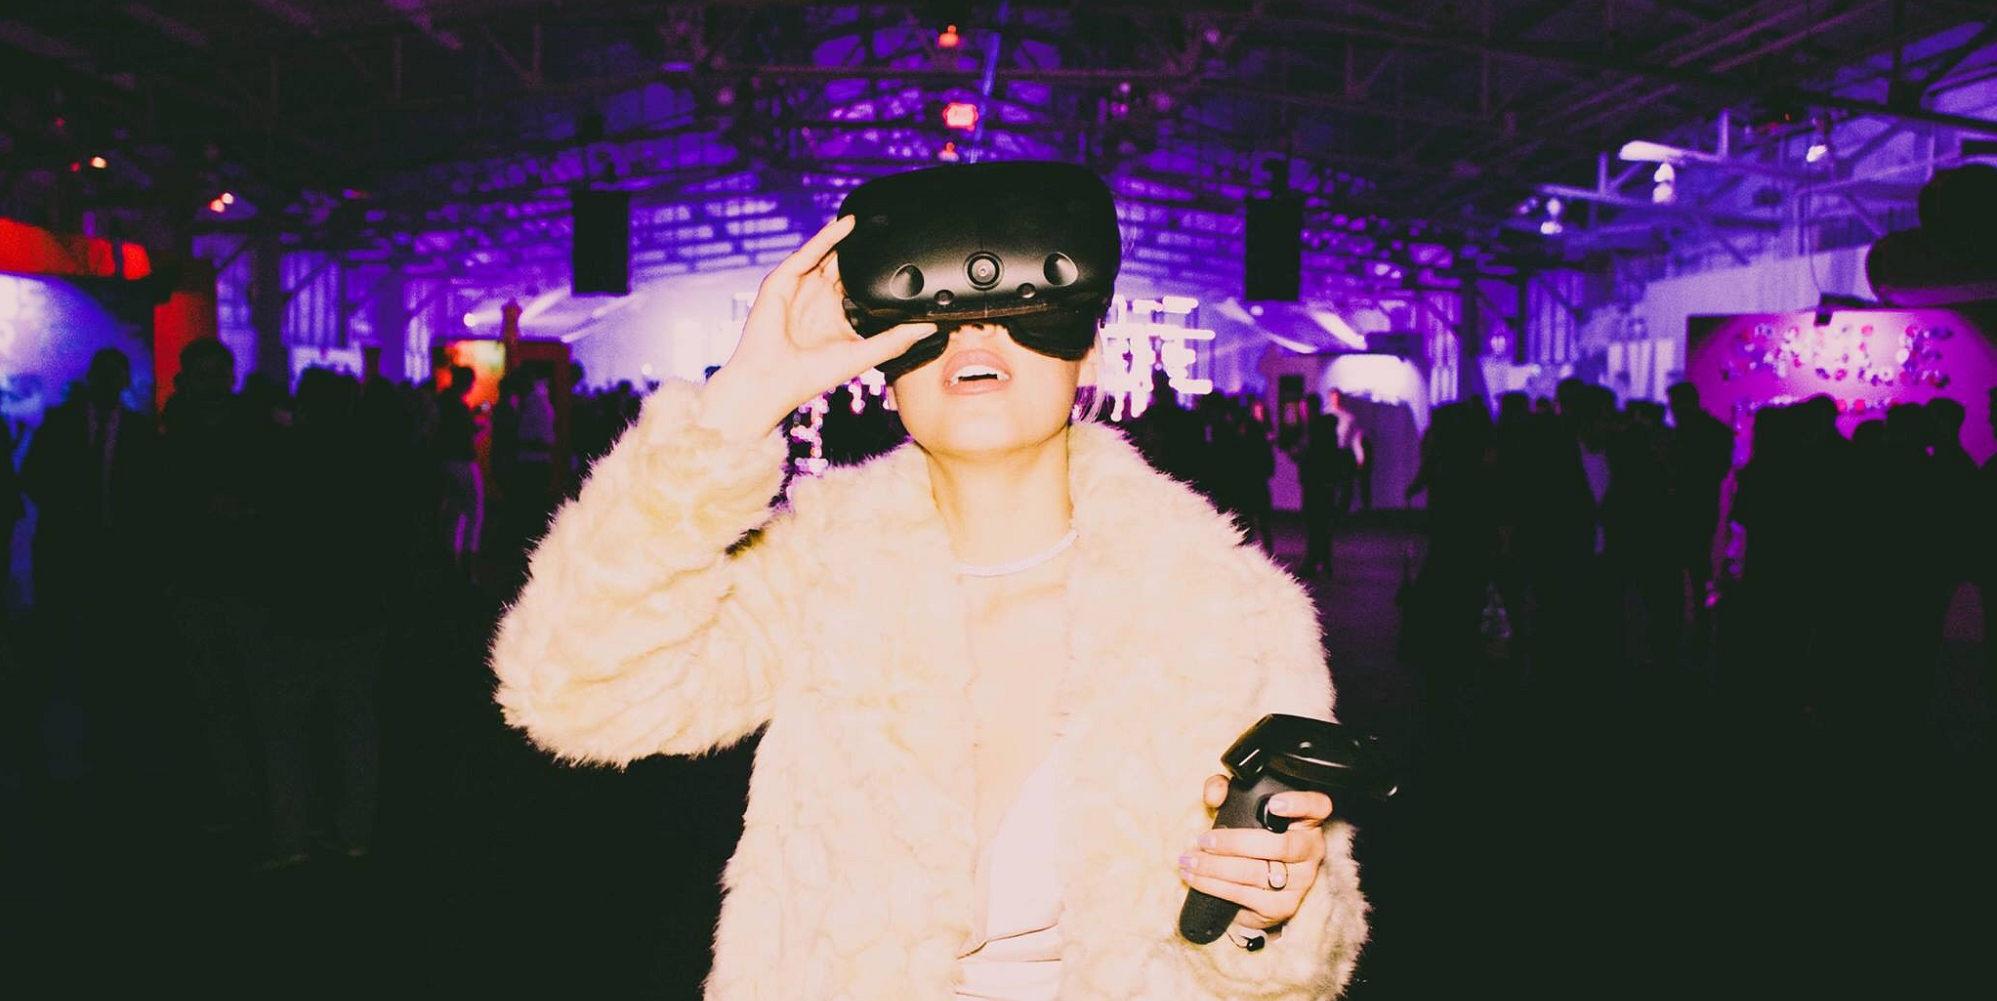 The Vive was featured at one of Eye Heart's recent events for NYE.